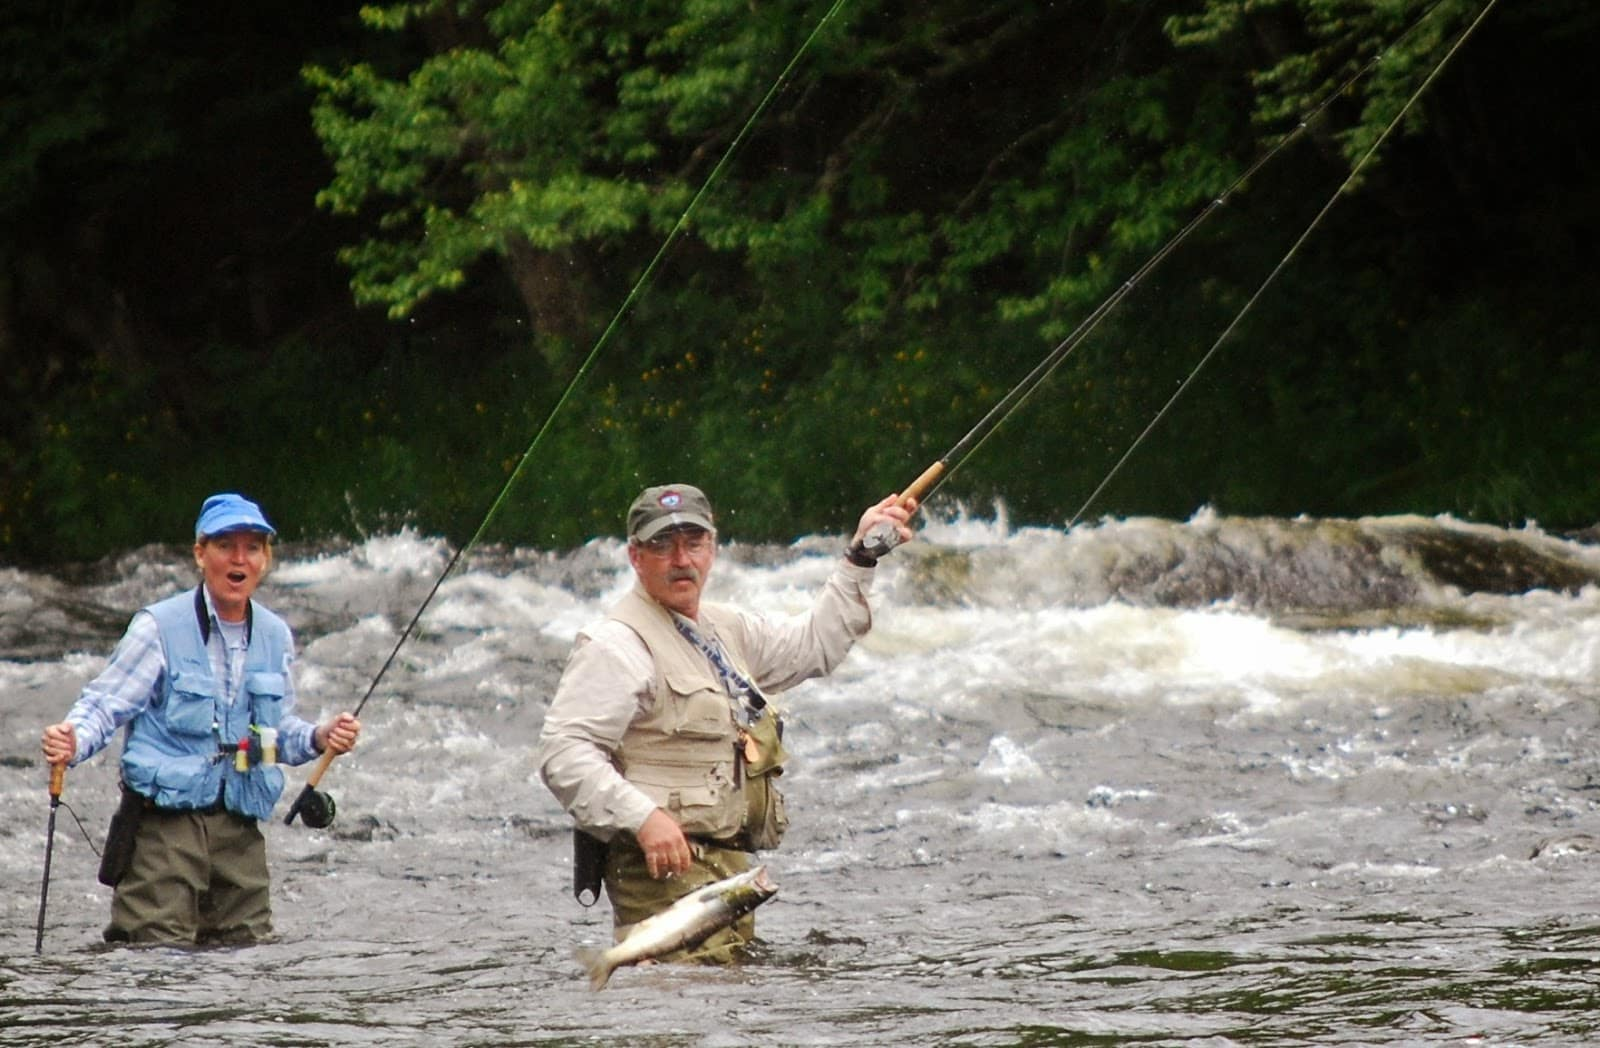 Photos fly fishing rangeley maine magalloway guide service for Fly fishing maine